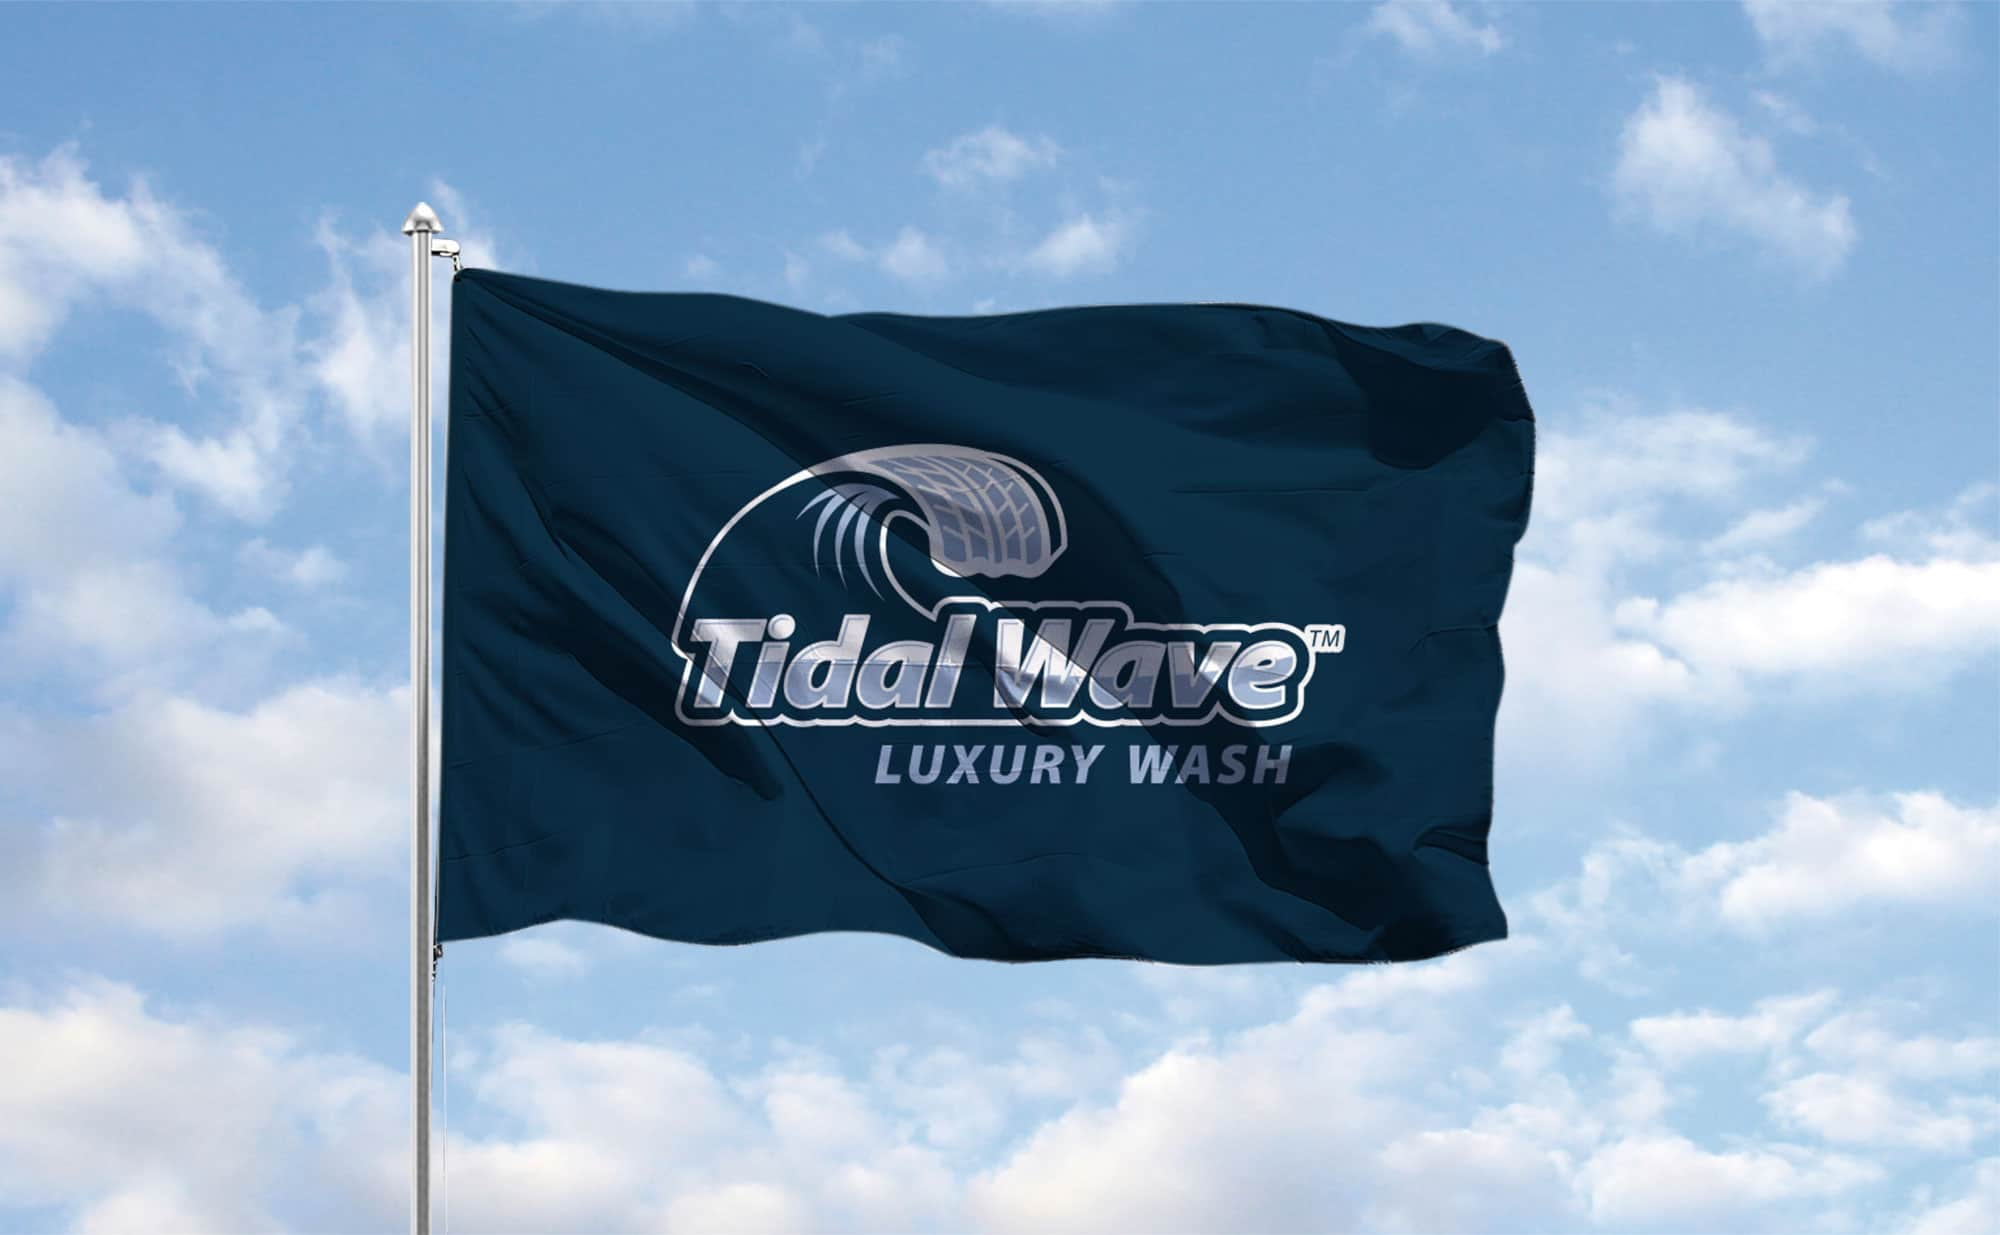 Tidal Wave flag design